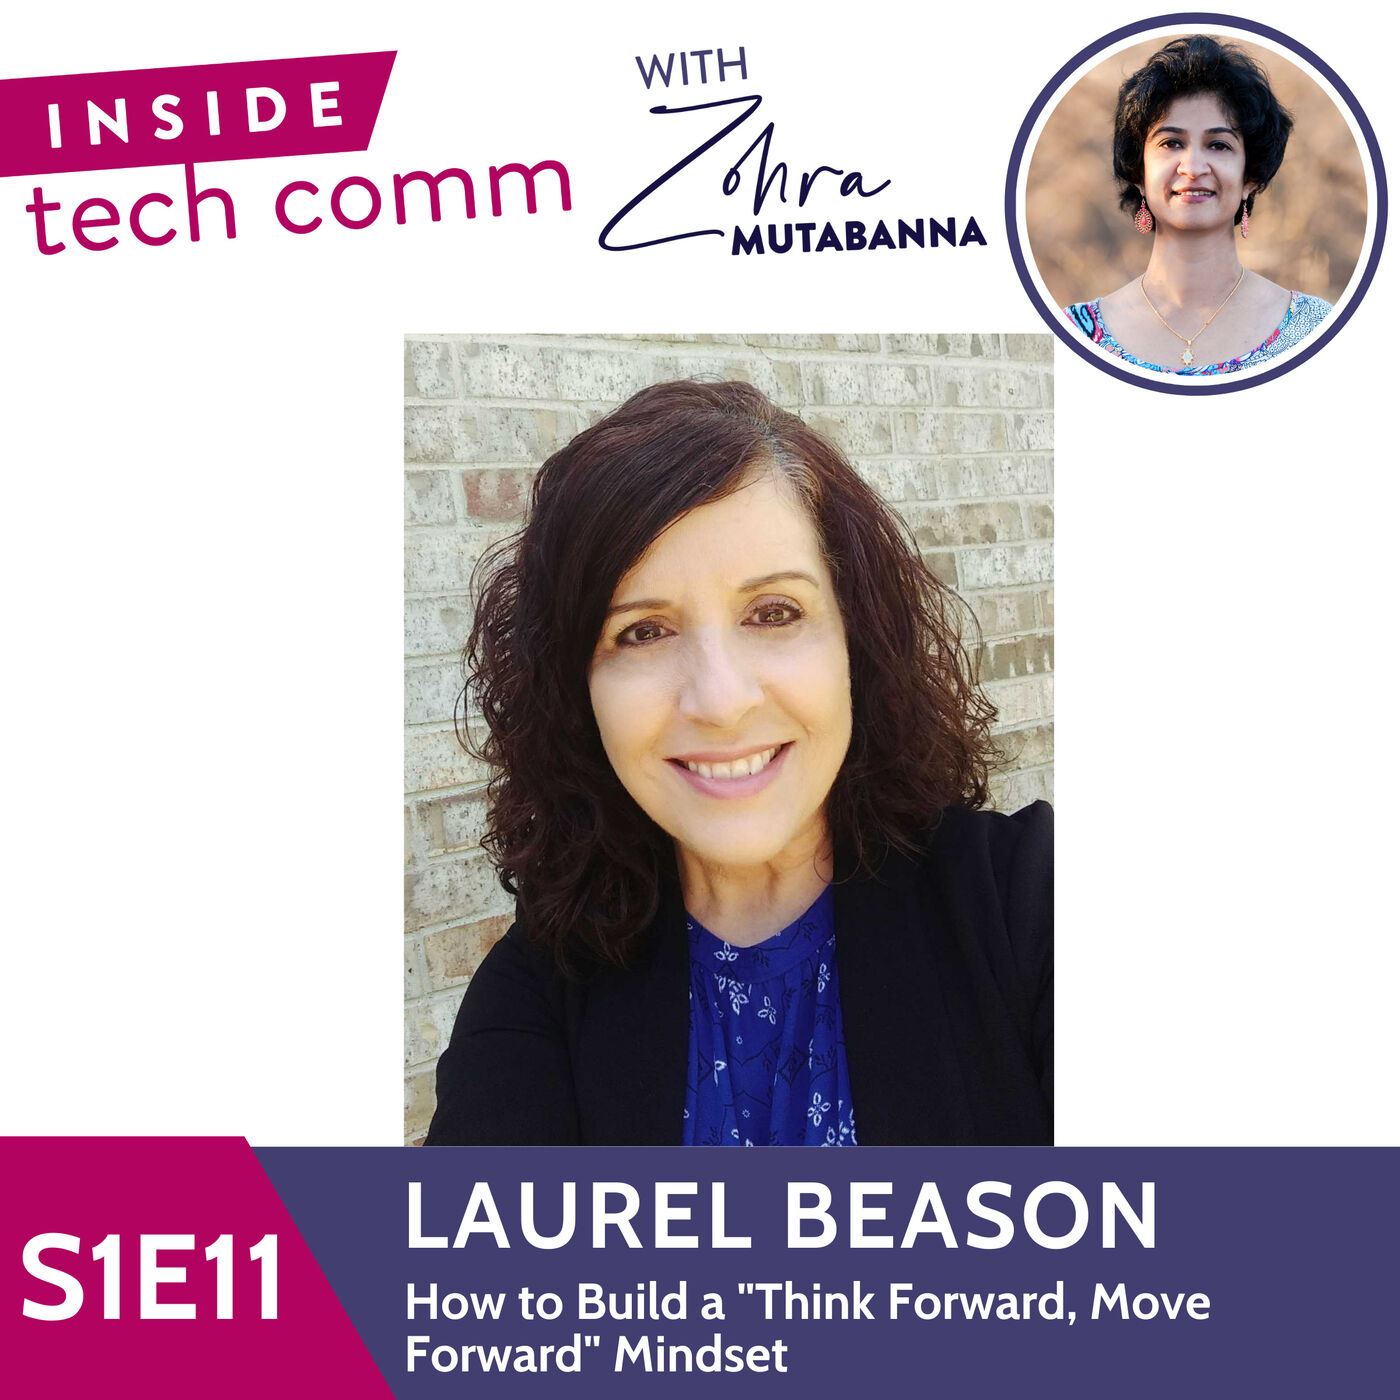 """S1E11 How to Build a """"Think Forward, Move Forward"""" Mindset with Laurel Beason"""